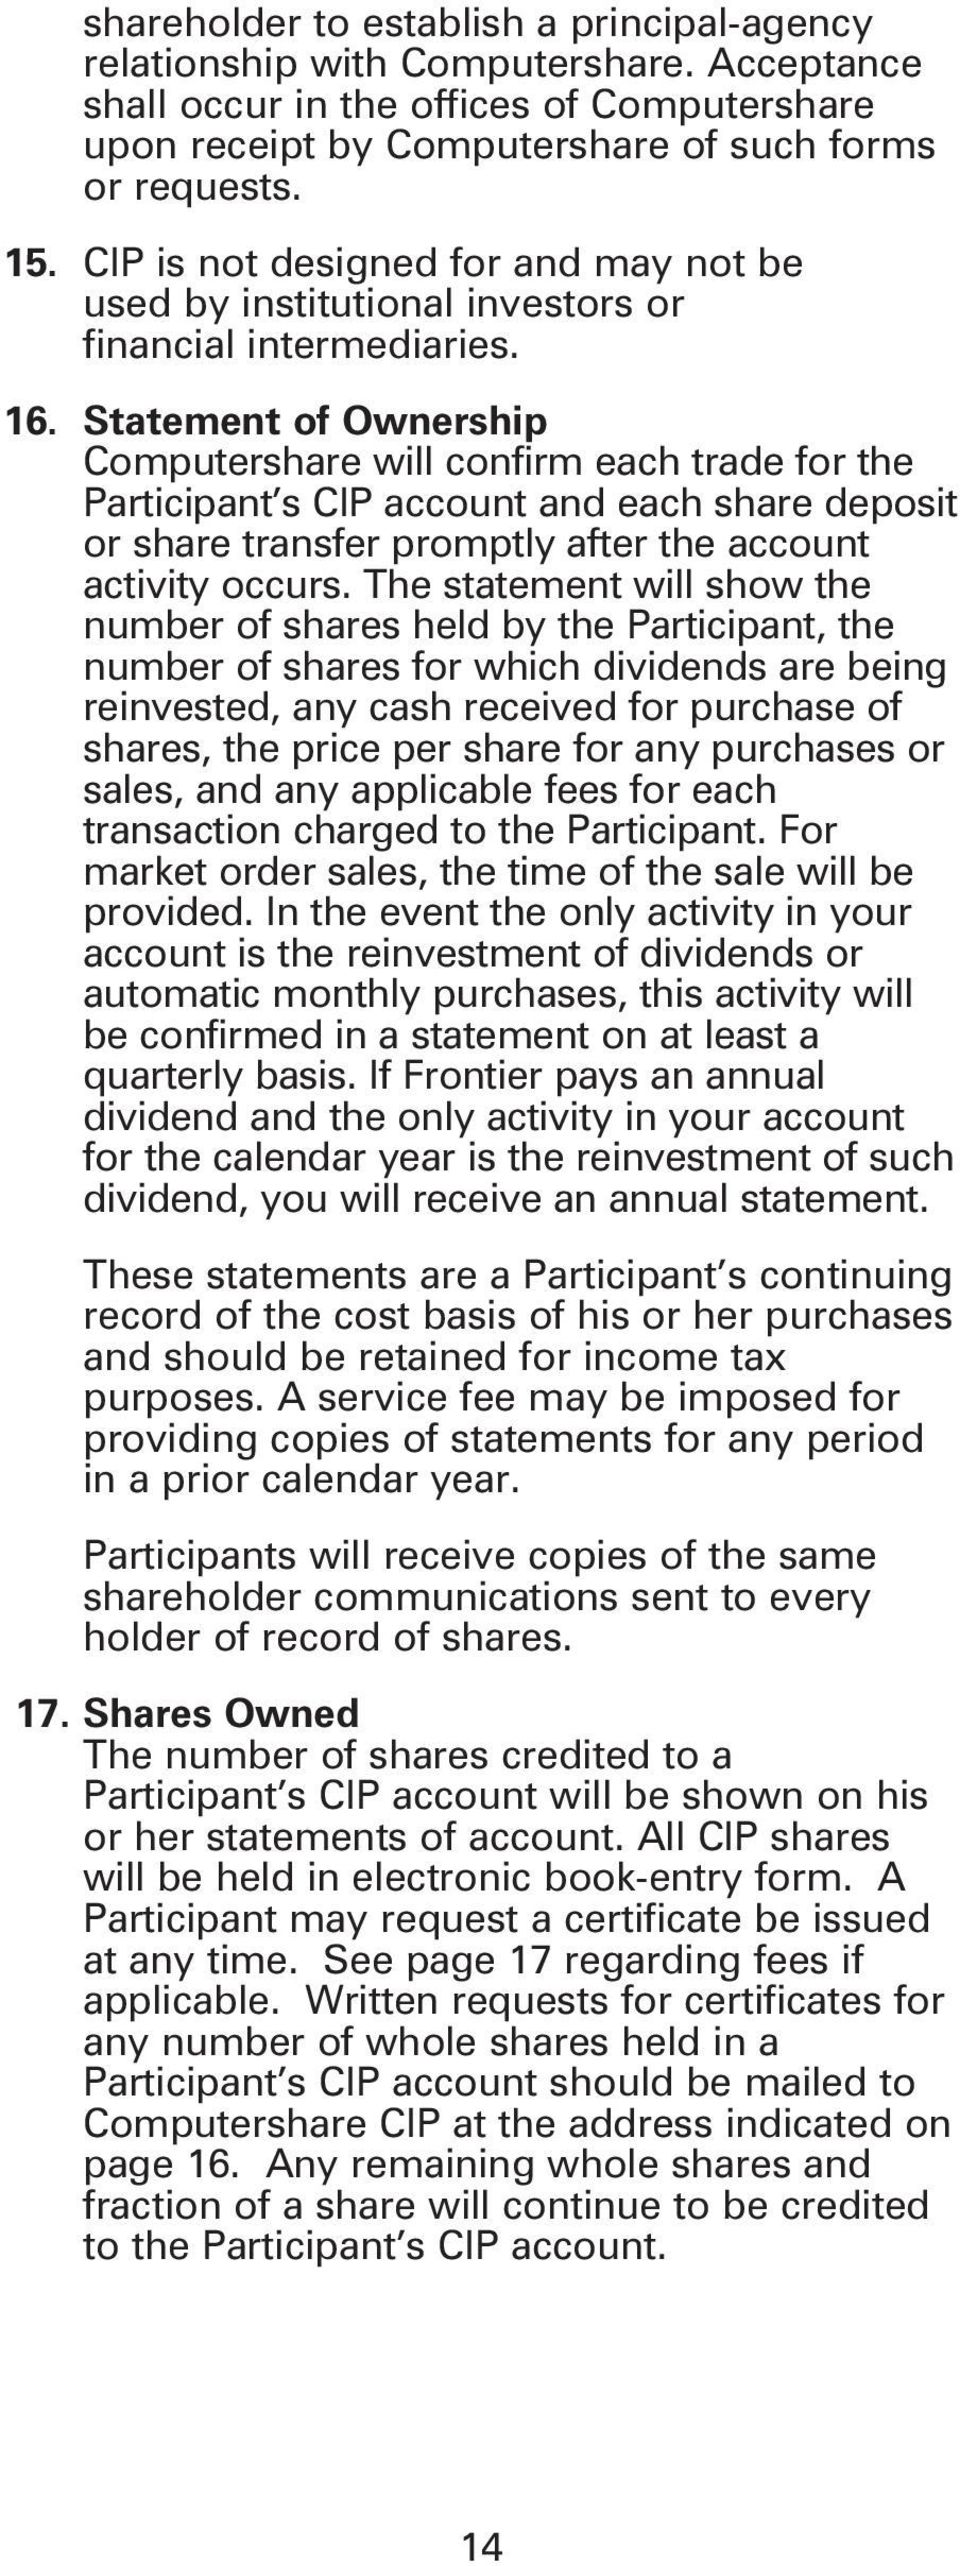 Statement of Ownership Computershare will confirm each trade for the Participant s CIP account and each share deposit or share transfer promptly after the account activity occurs.